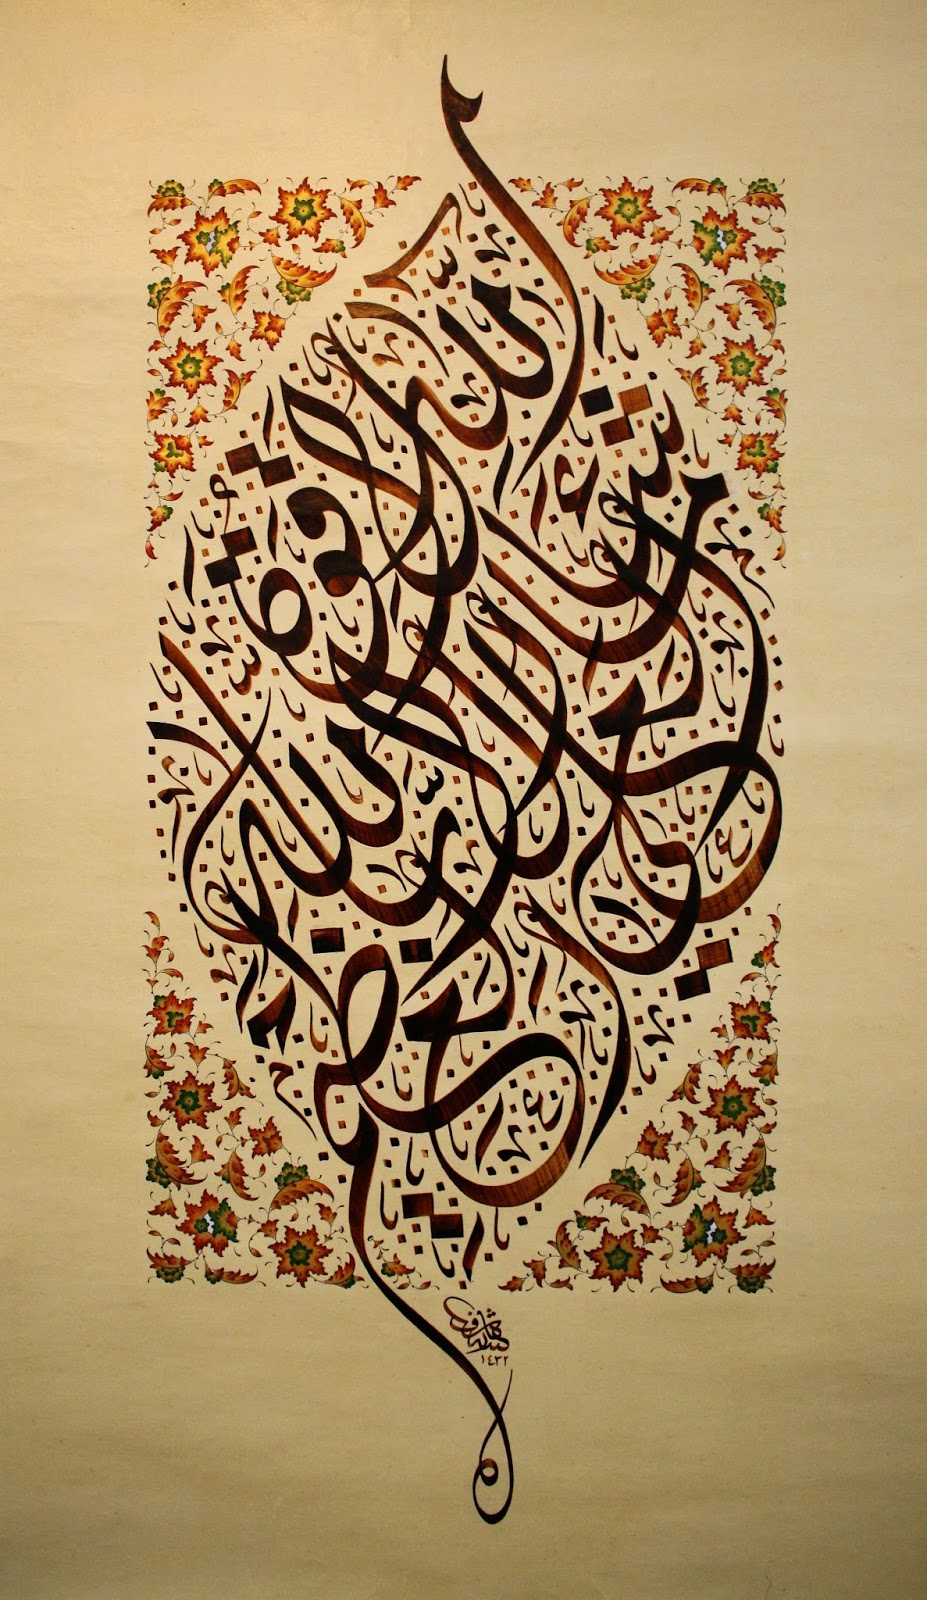 islamic art is intended to suggest